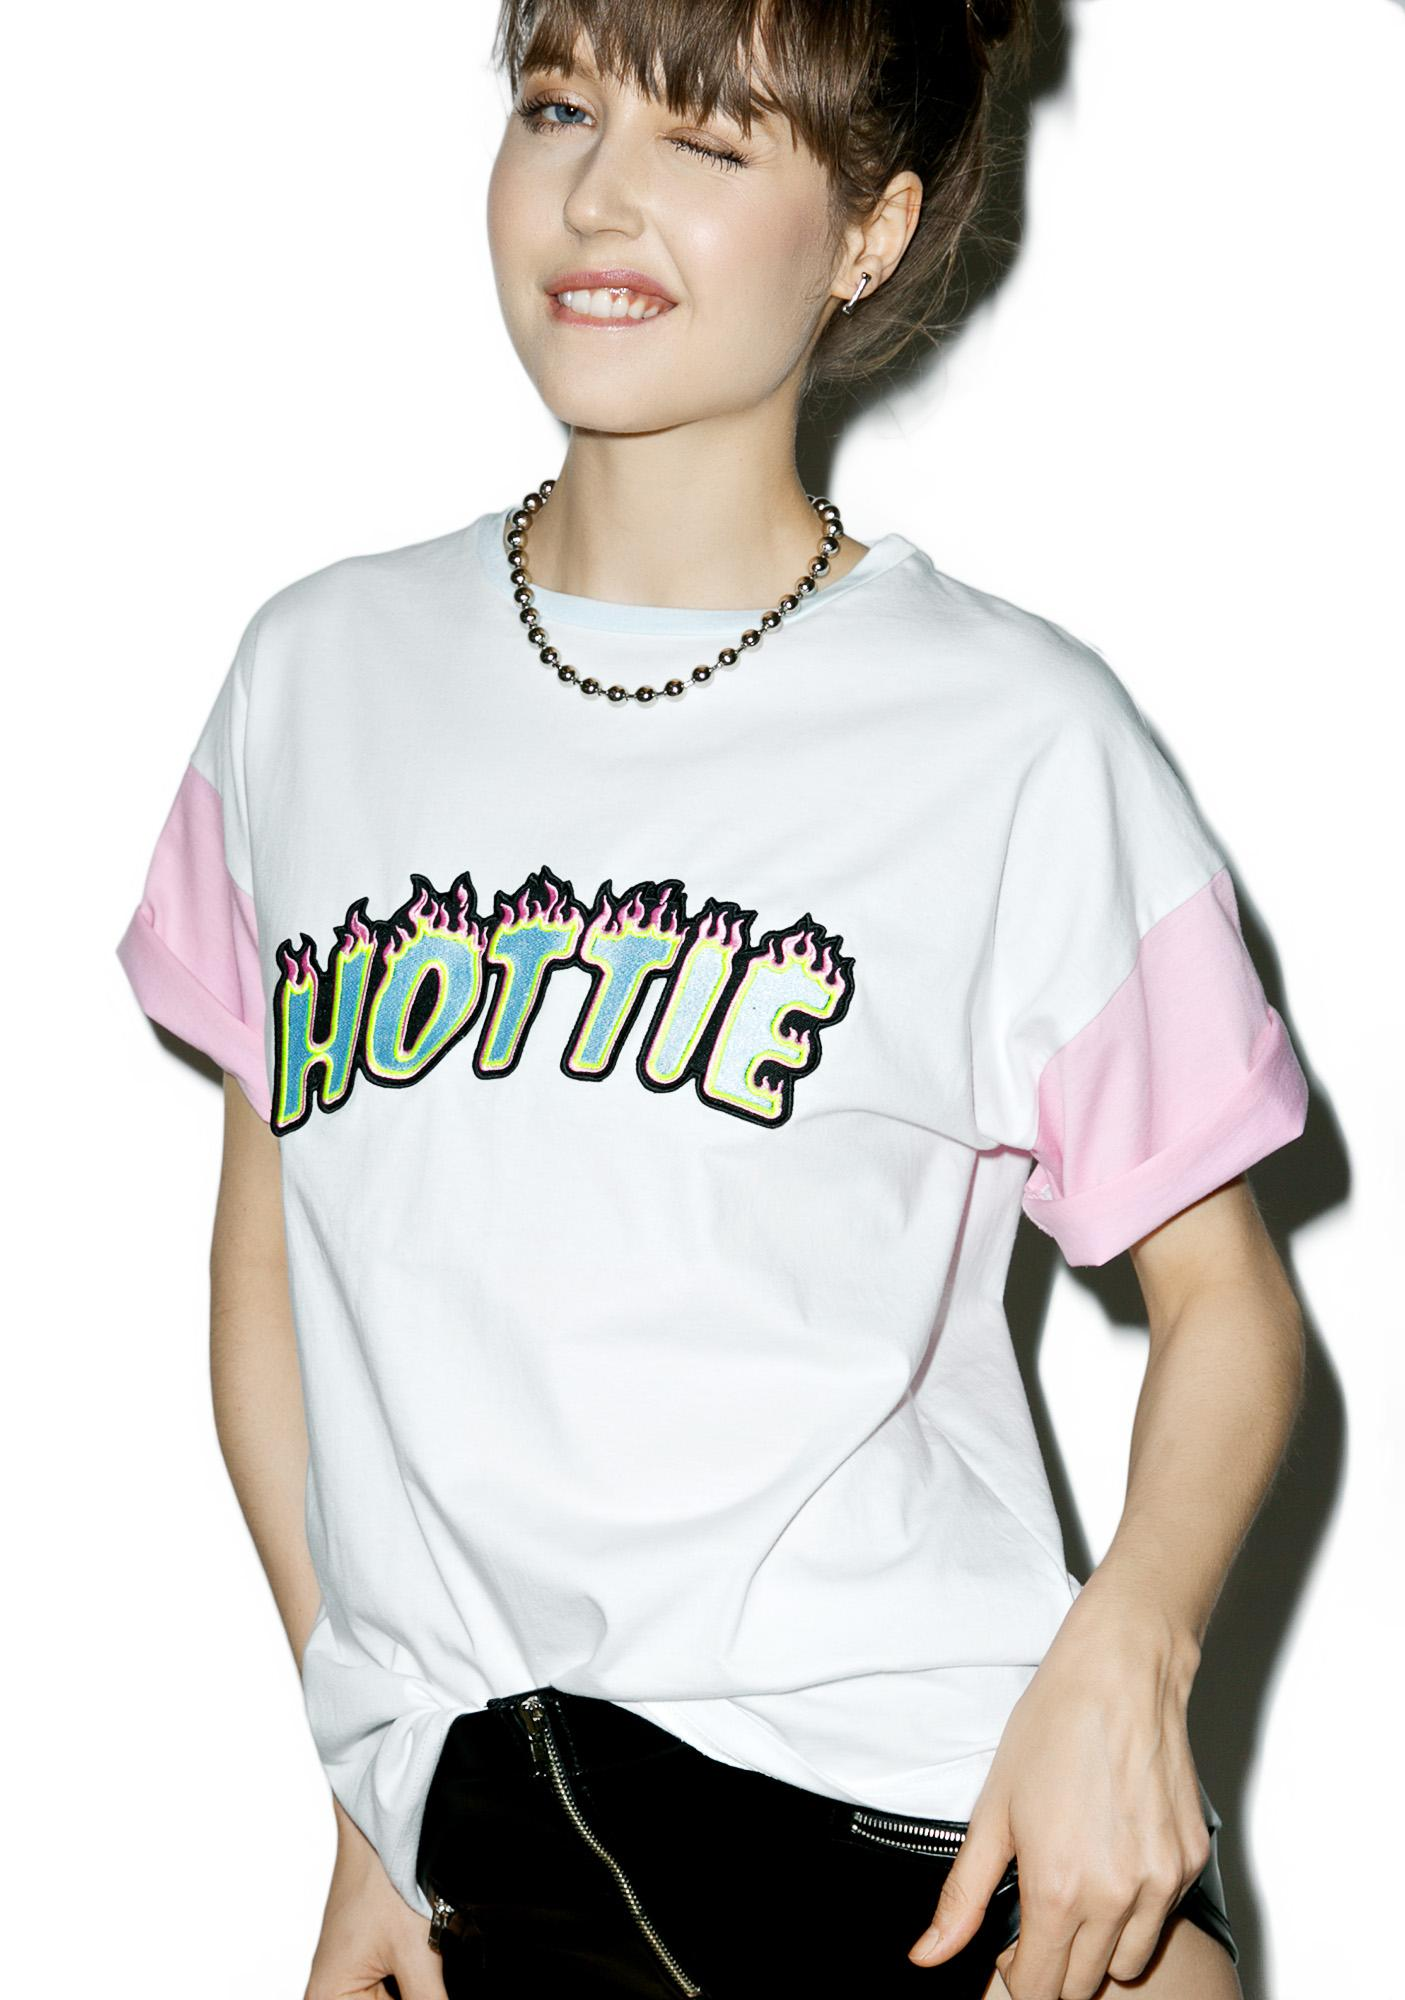 Sugarpills Hottie T-Shirt